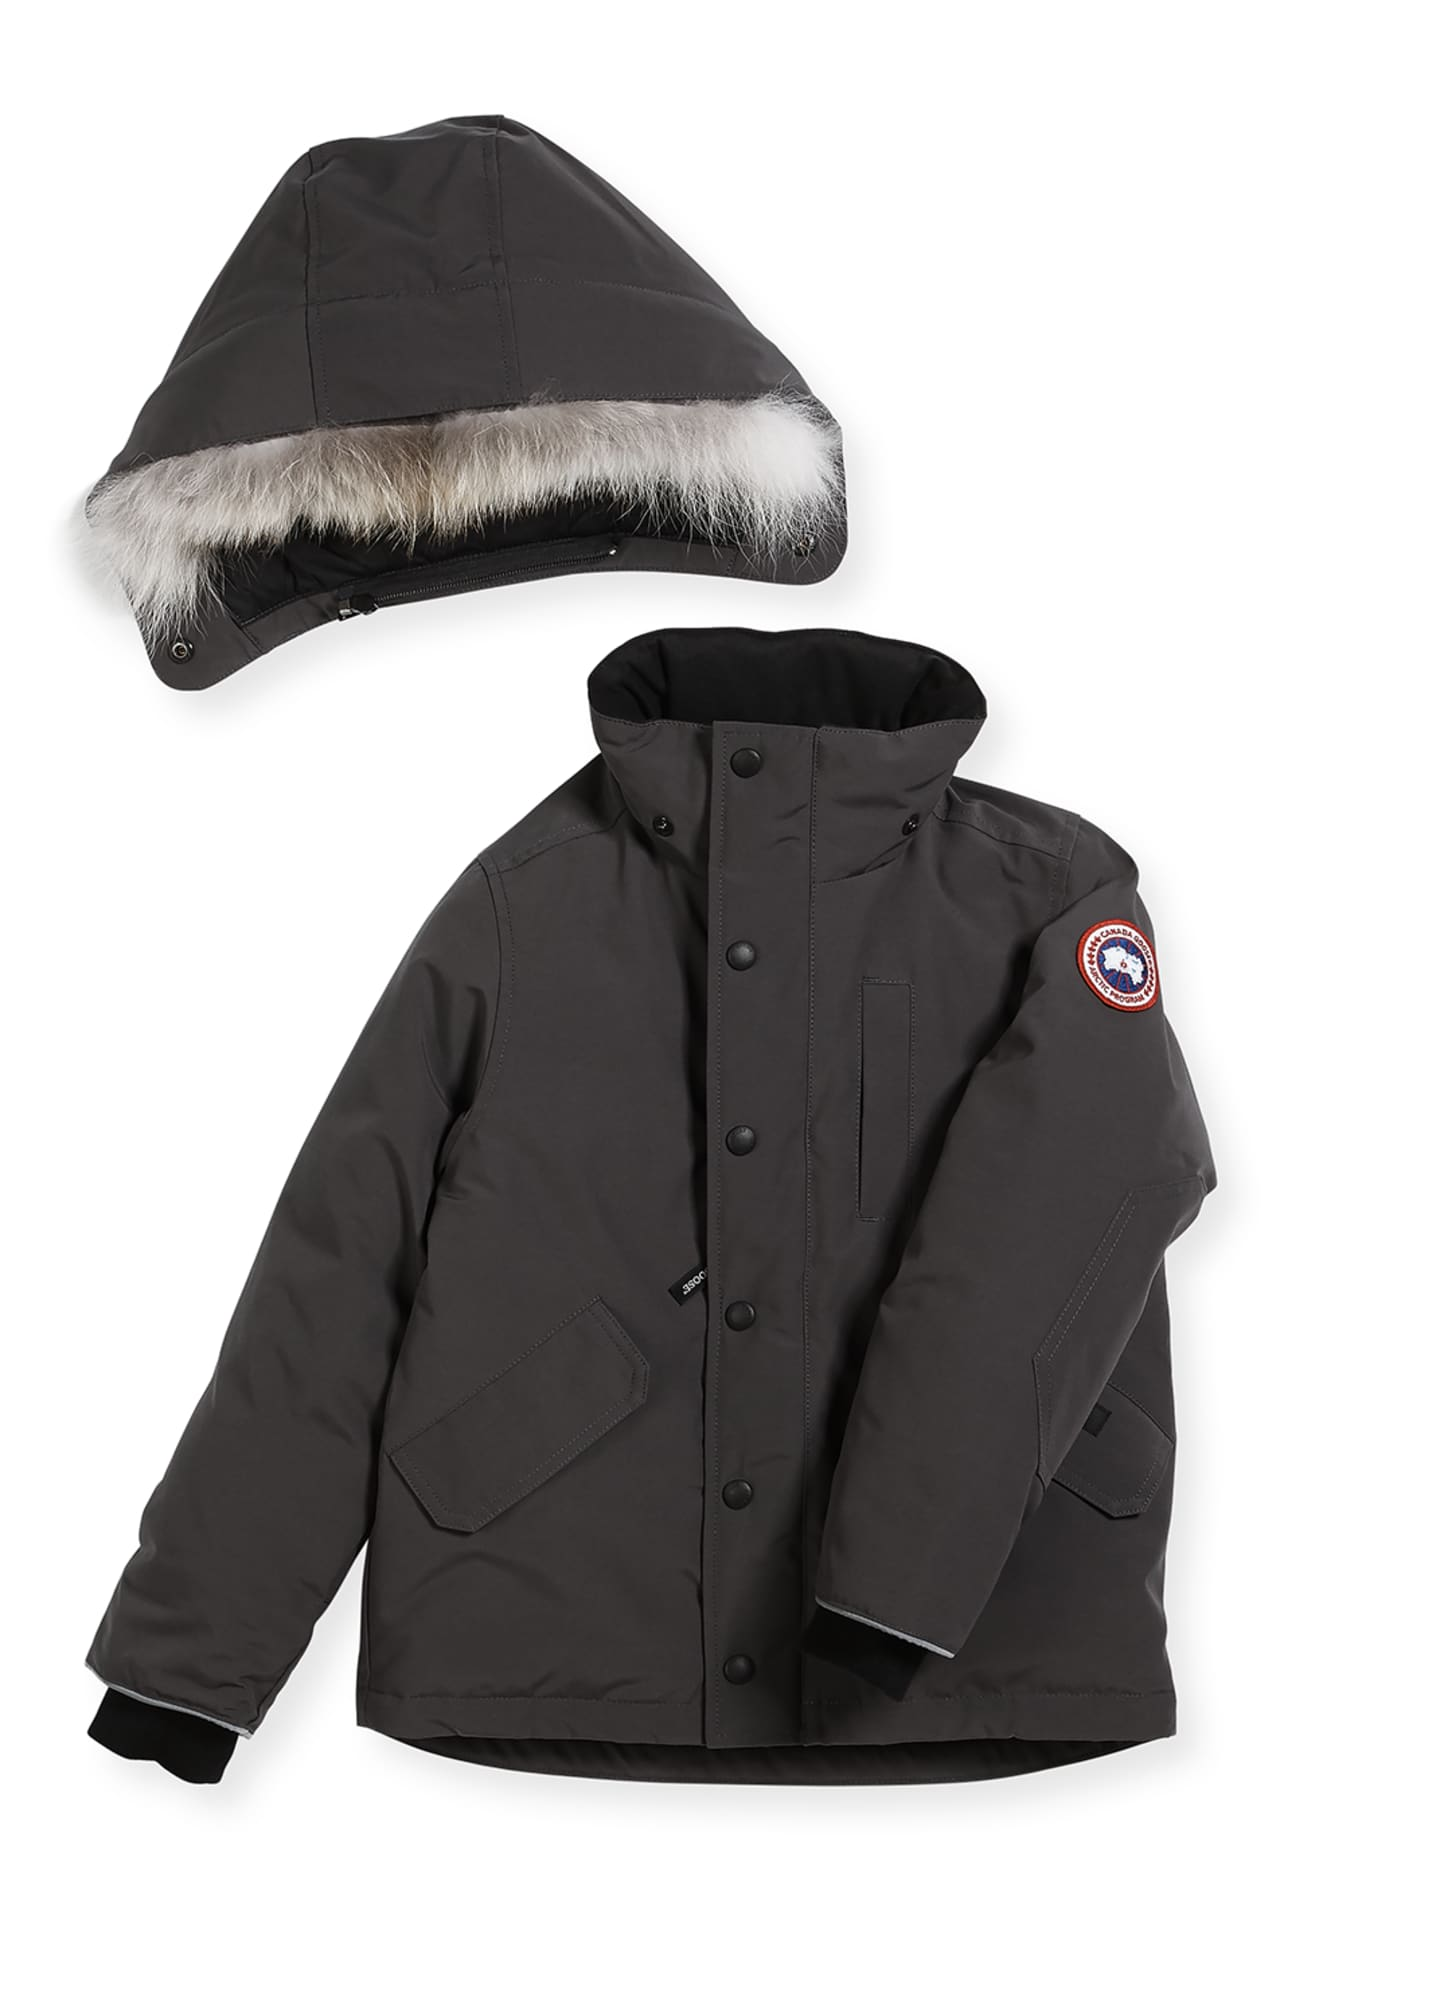 Image 2 of 2: Boys' Logan Parka with Fur Trim, Size XS-XL